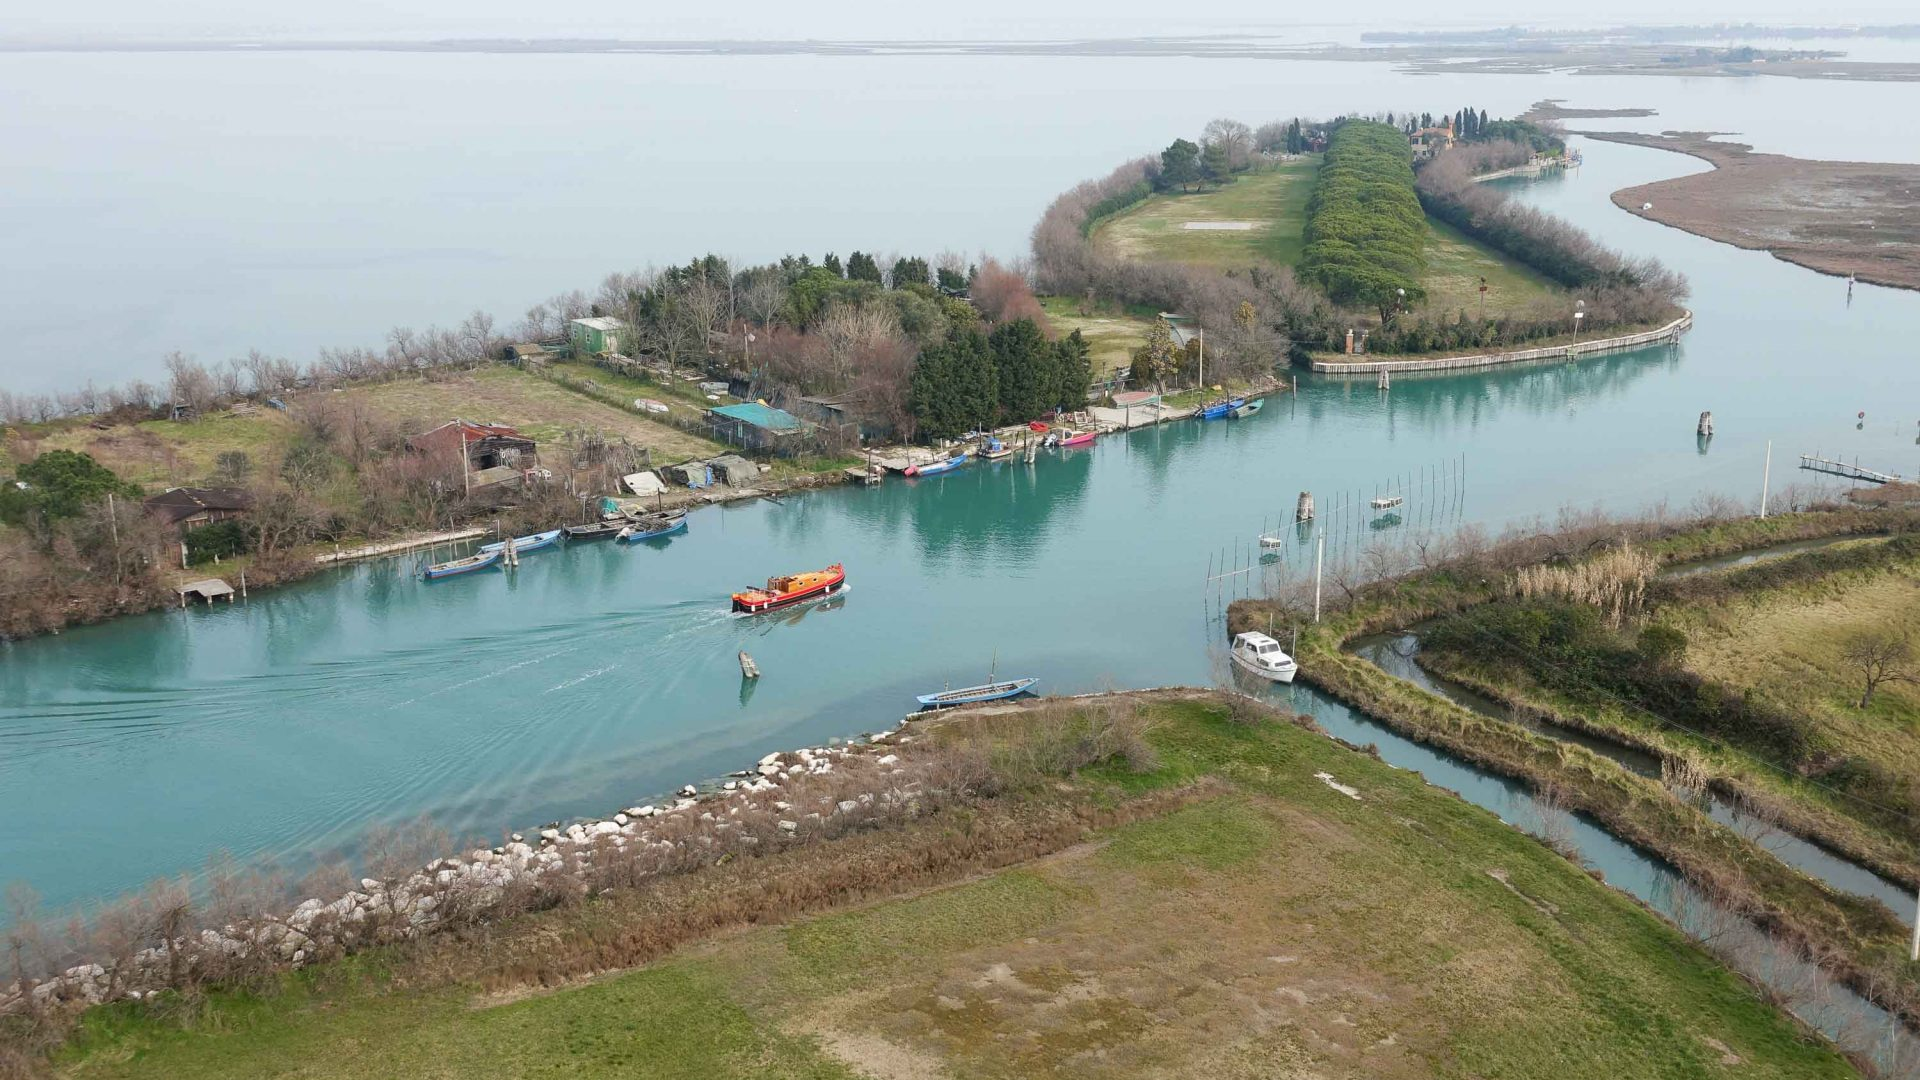 View of the bragozzo boat from the bell tower on the island of Torcello.